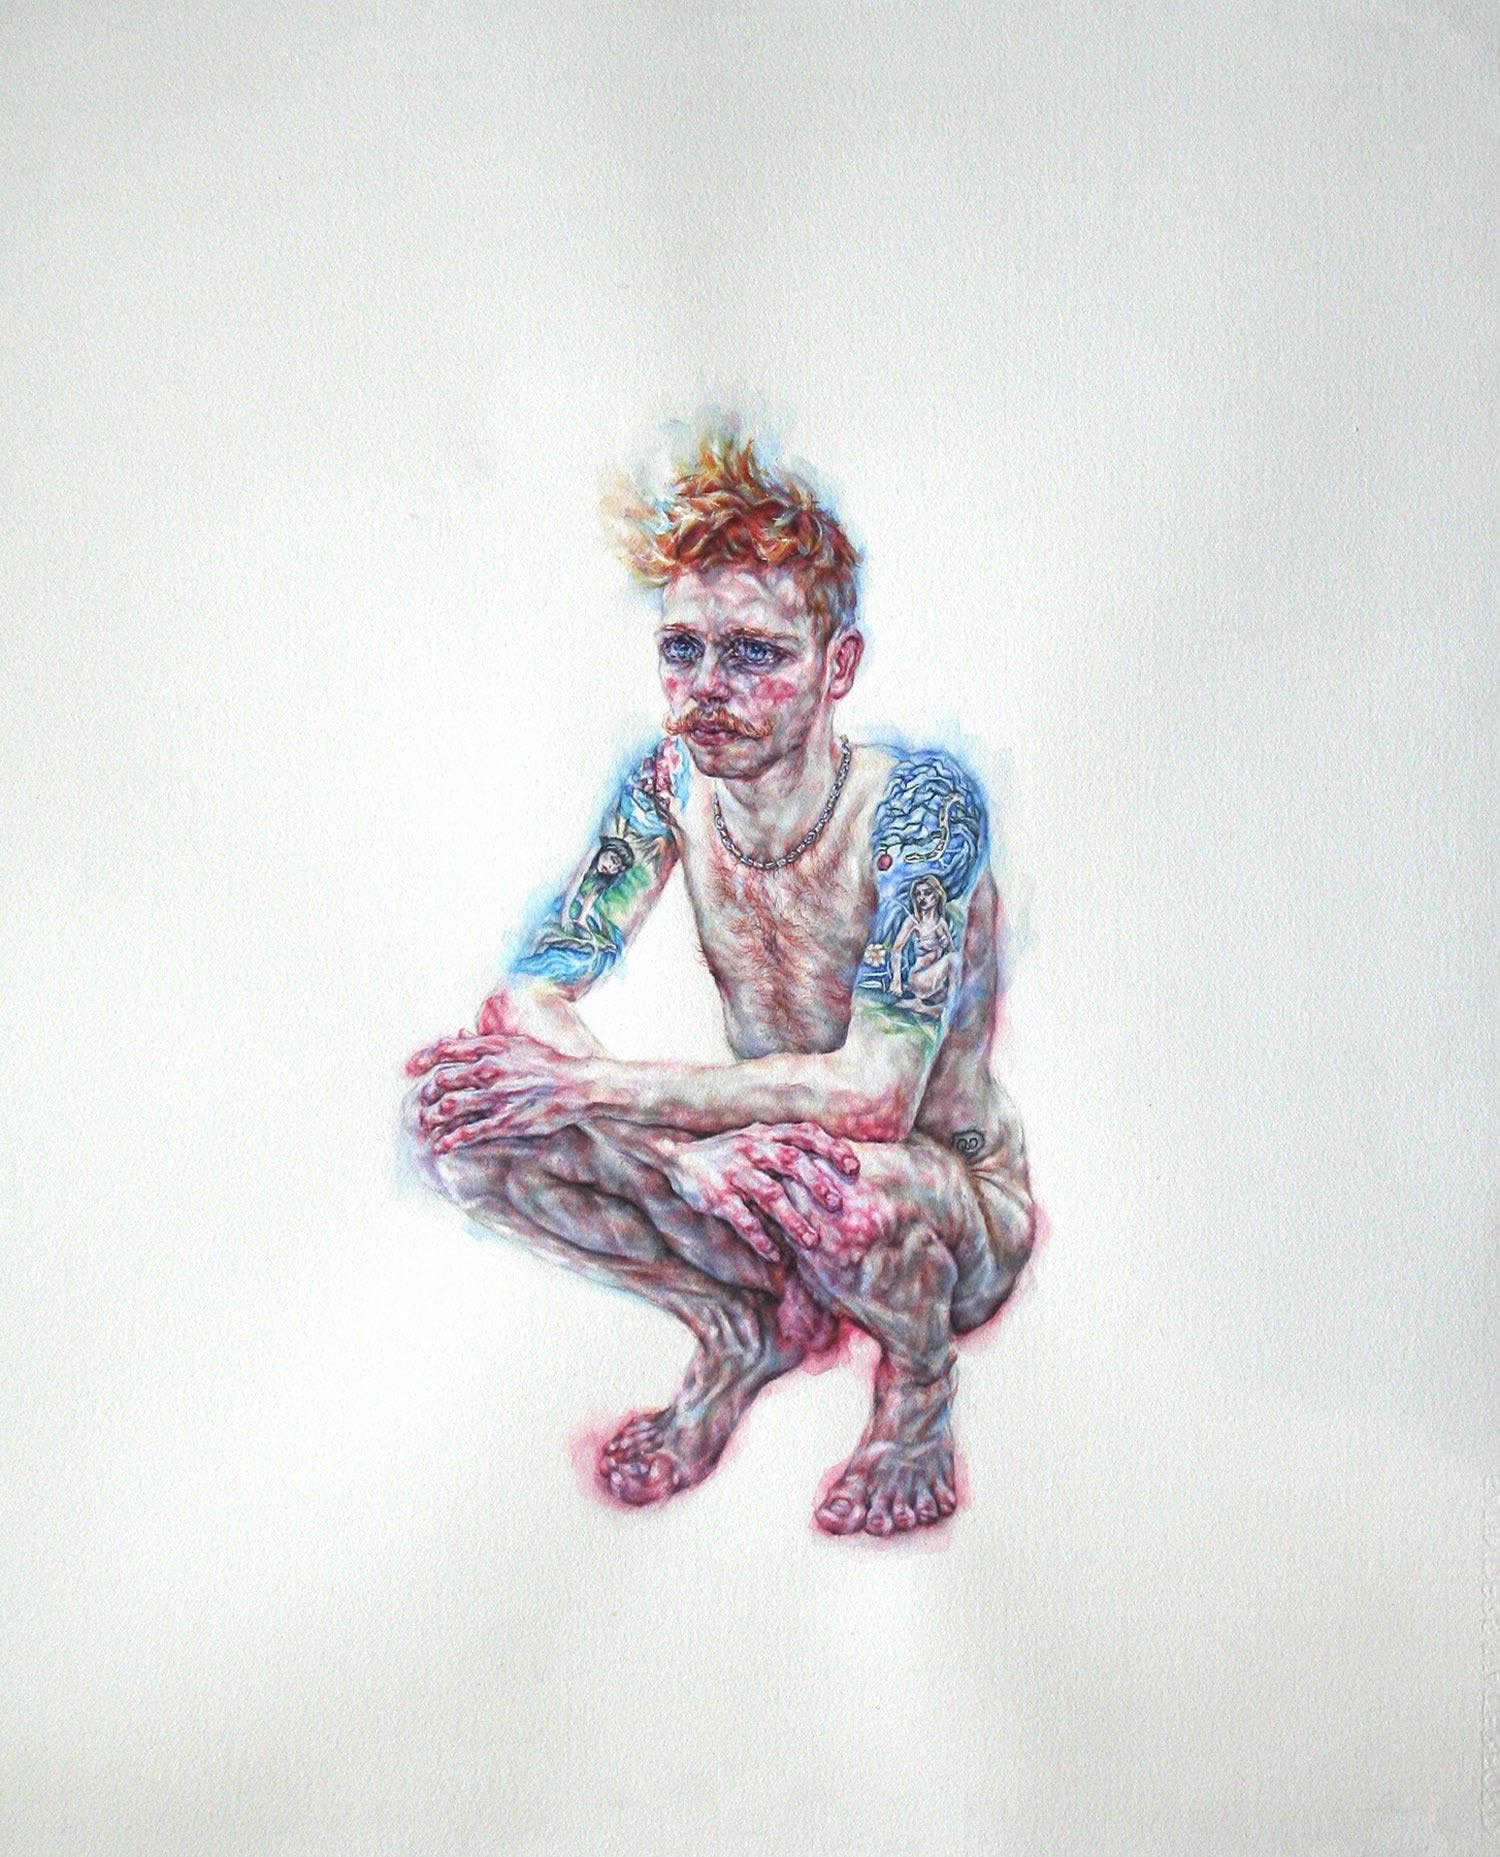 tammy salzl figurative watercolour illustration red haired man